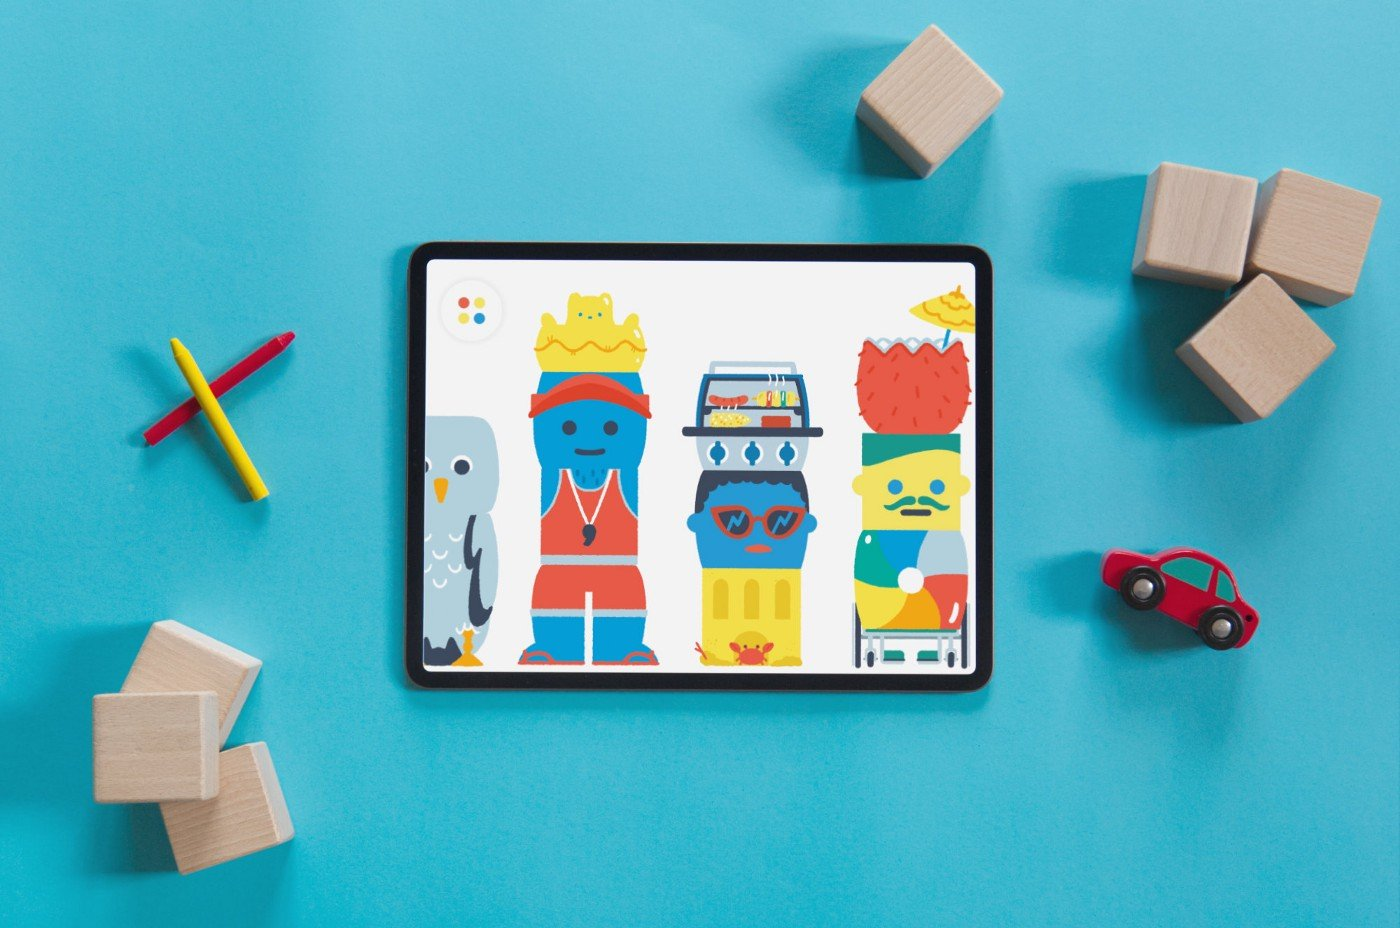 photo of Amazing Kids App Pok Pok Playroom Updated With Silly Blocks: Summer image